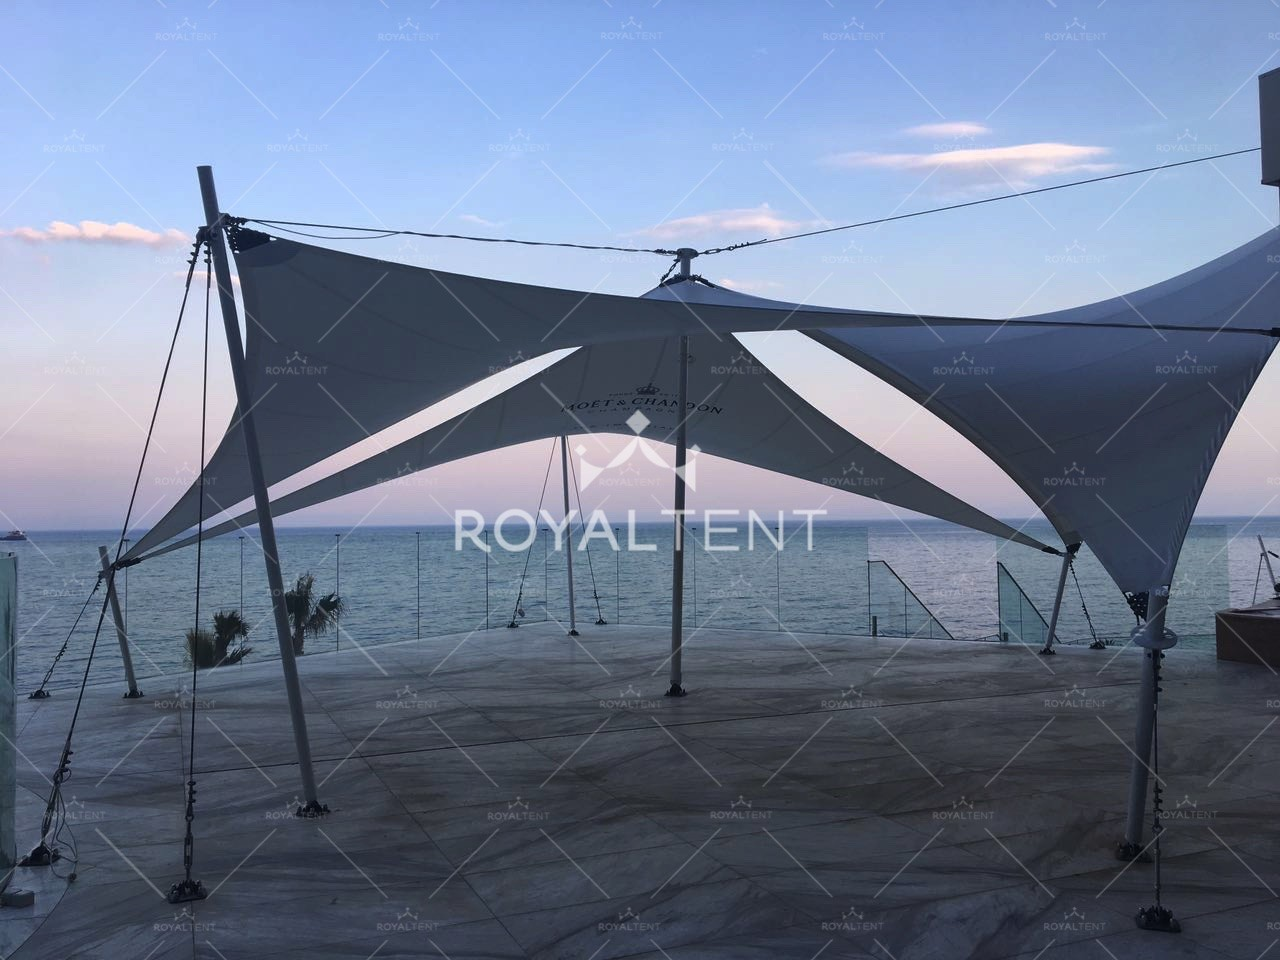 https://royaltent.me/houses_images/tent3_2_200116082338.jpg